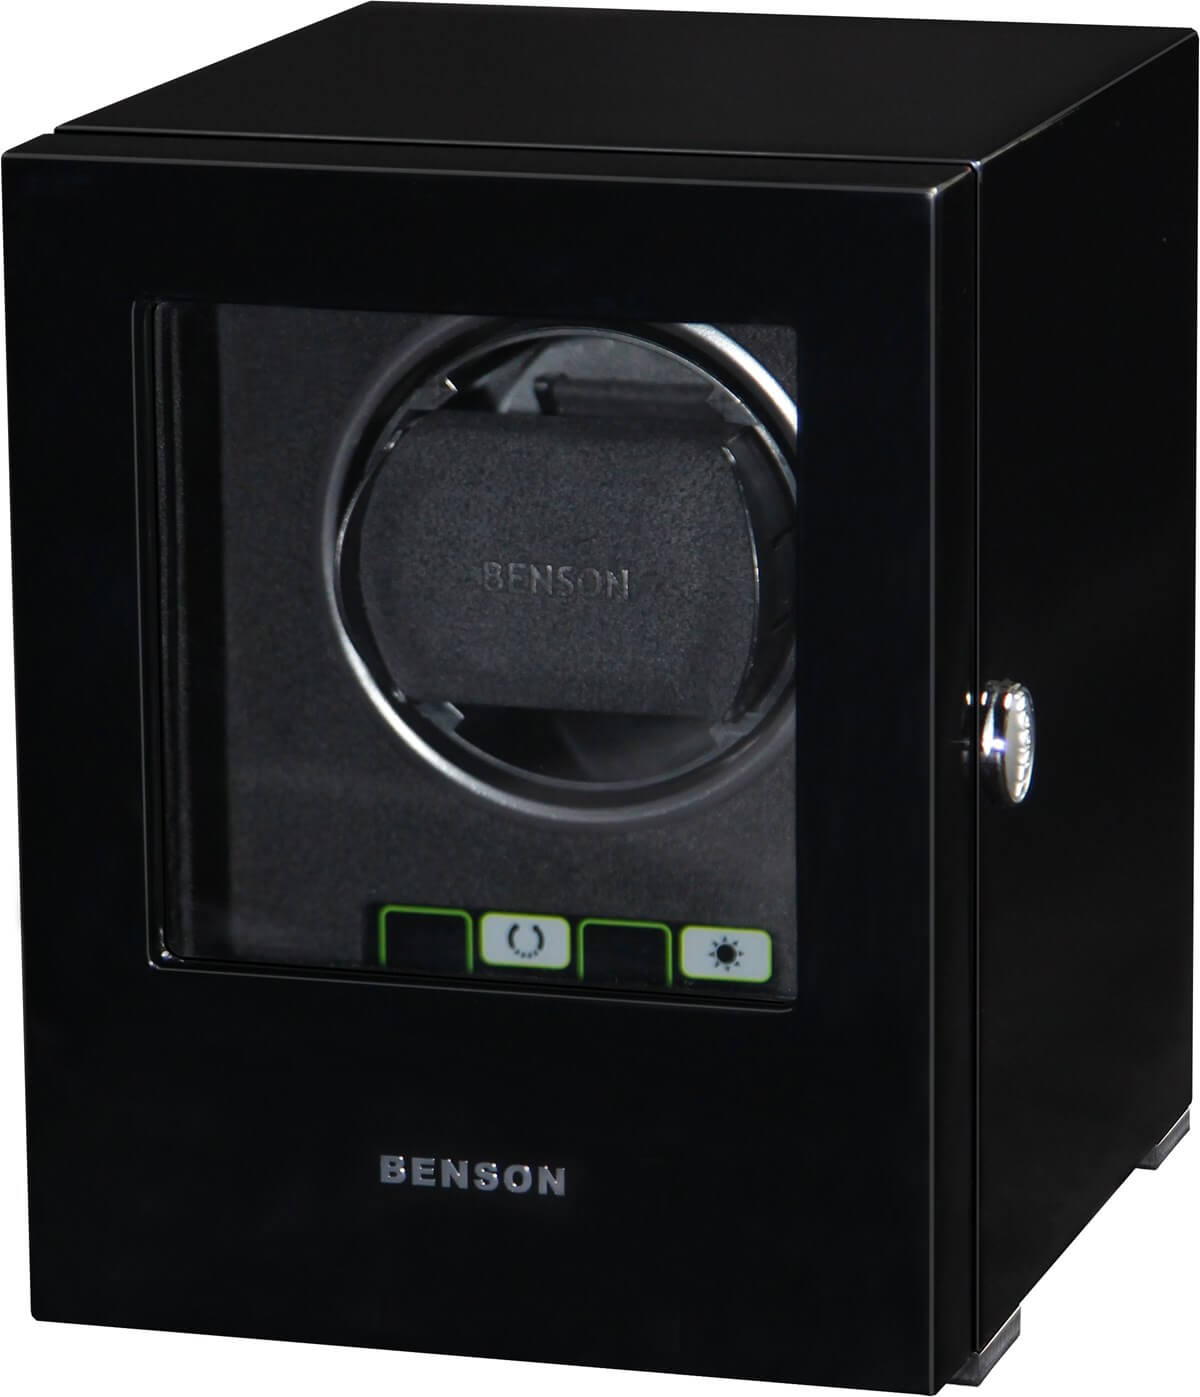 Benson Black Series 1.16.B